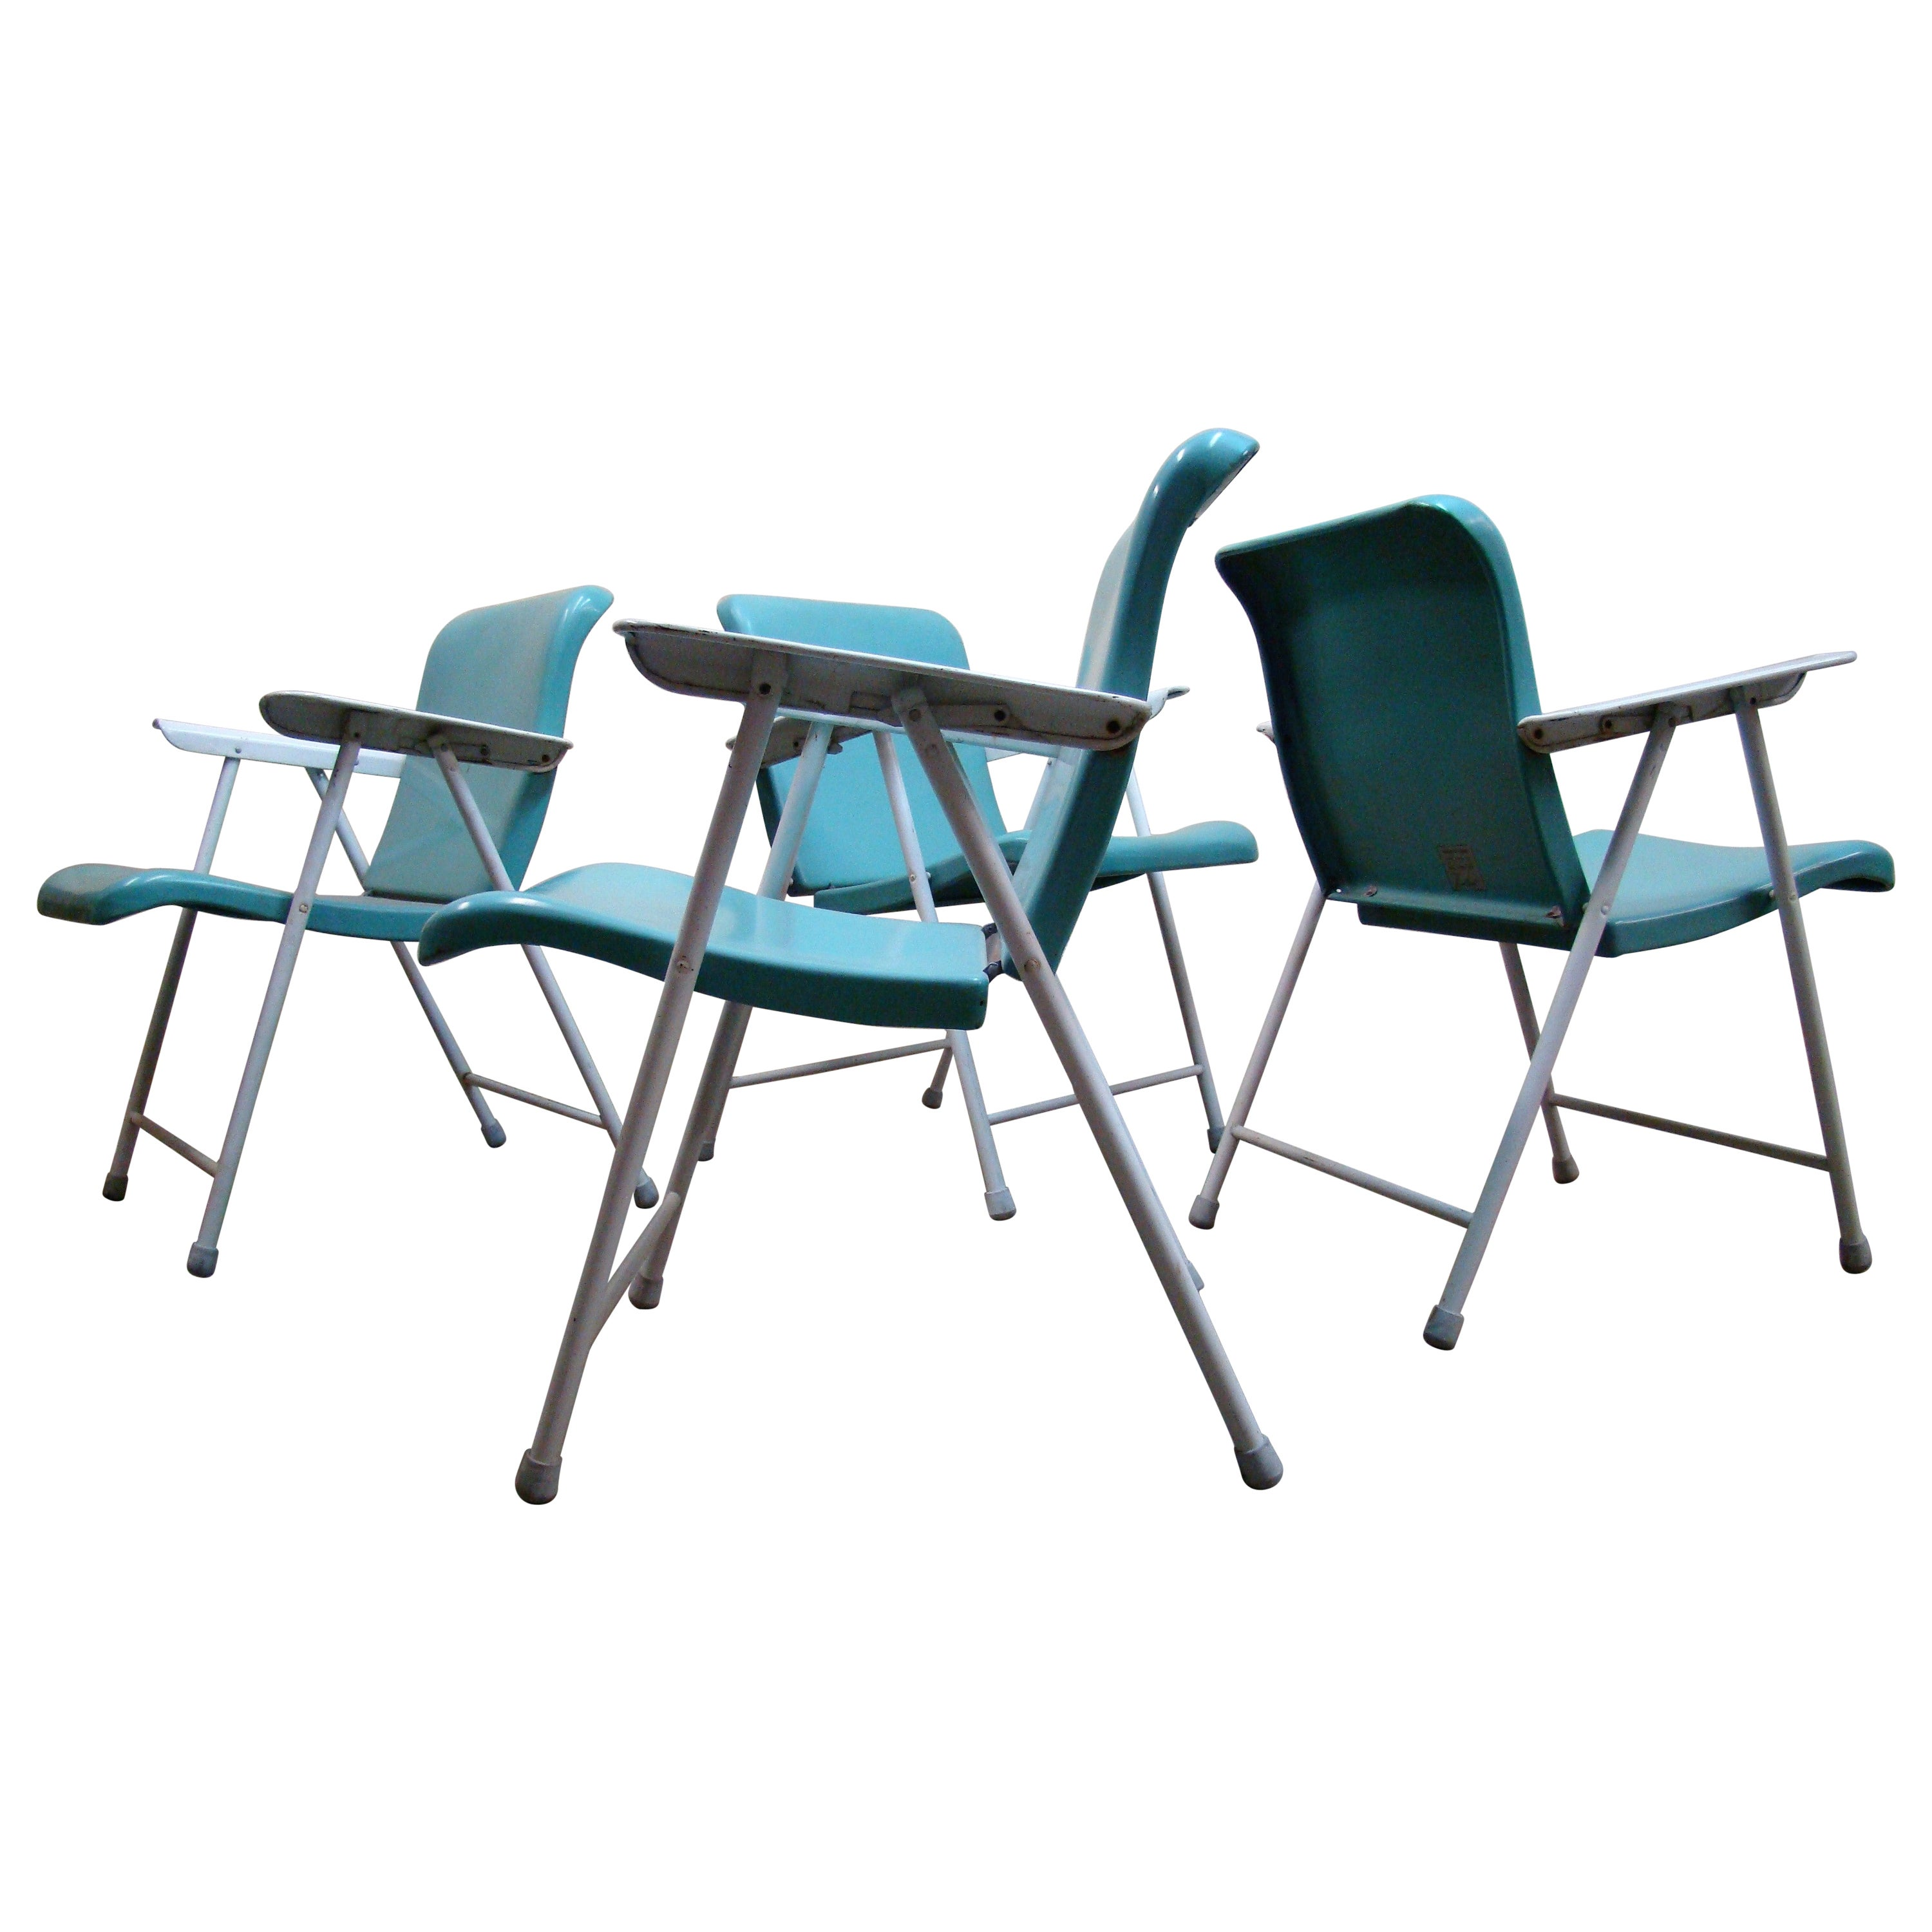 "Original ""Sky Blue"" Russel Wright Folding Metal Outdoor Chairs, 1950s"